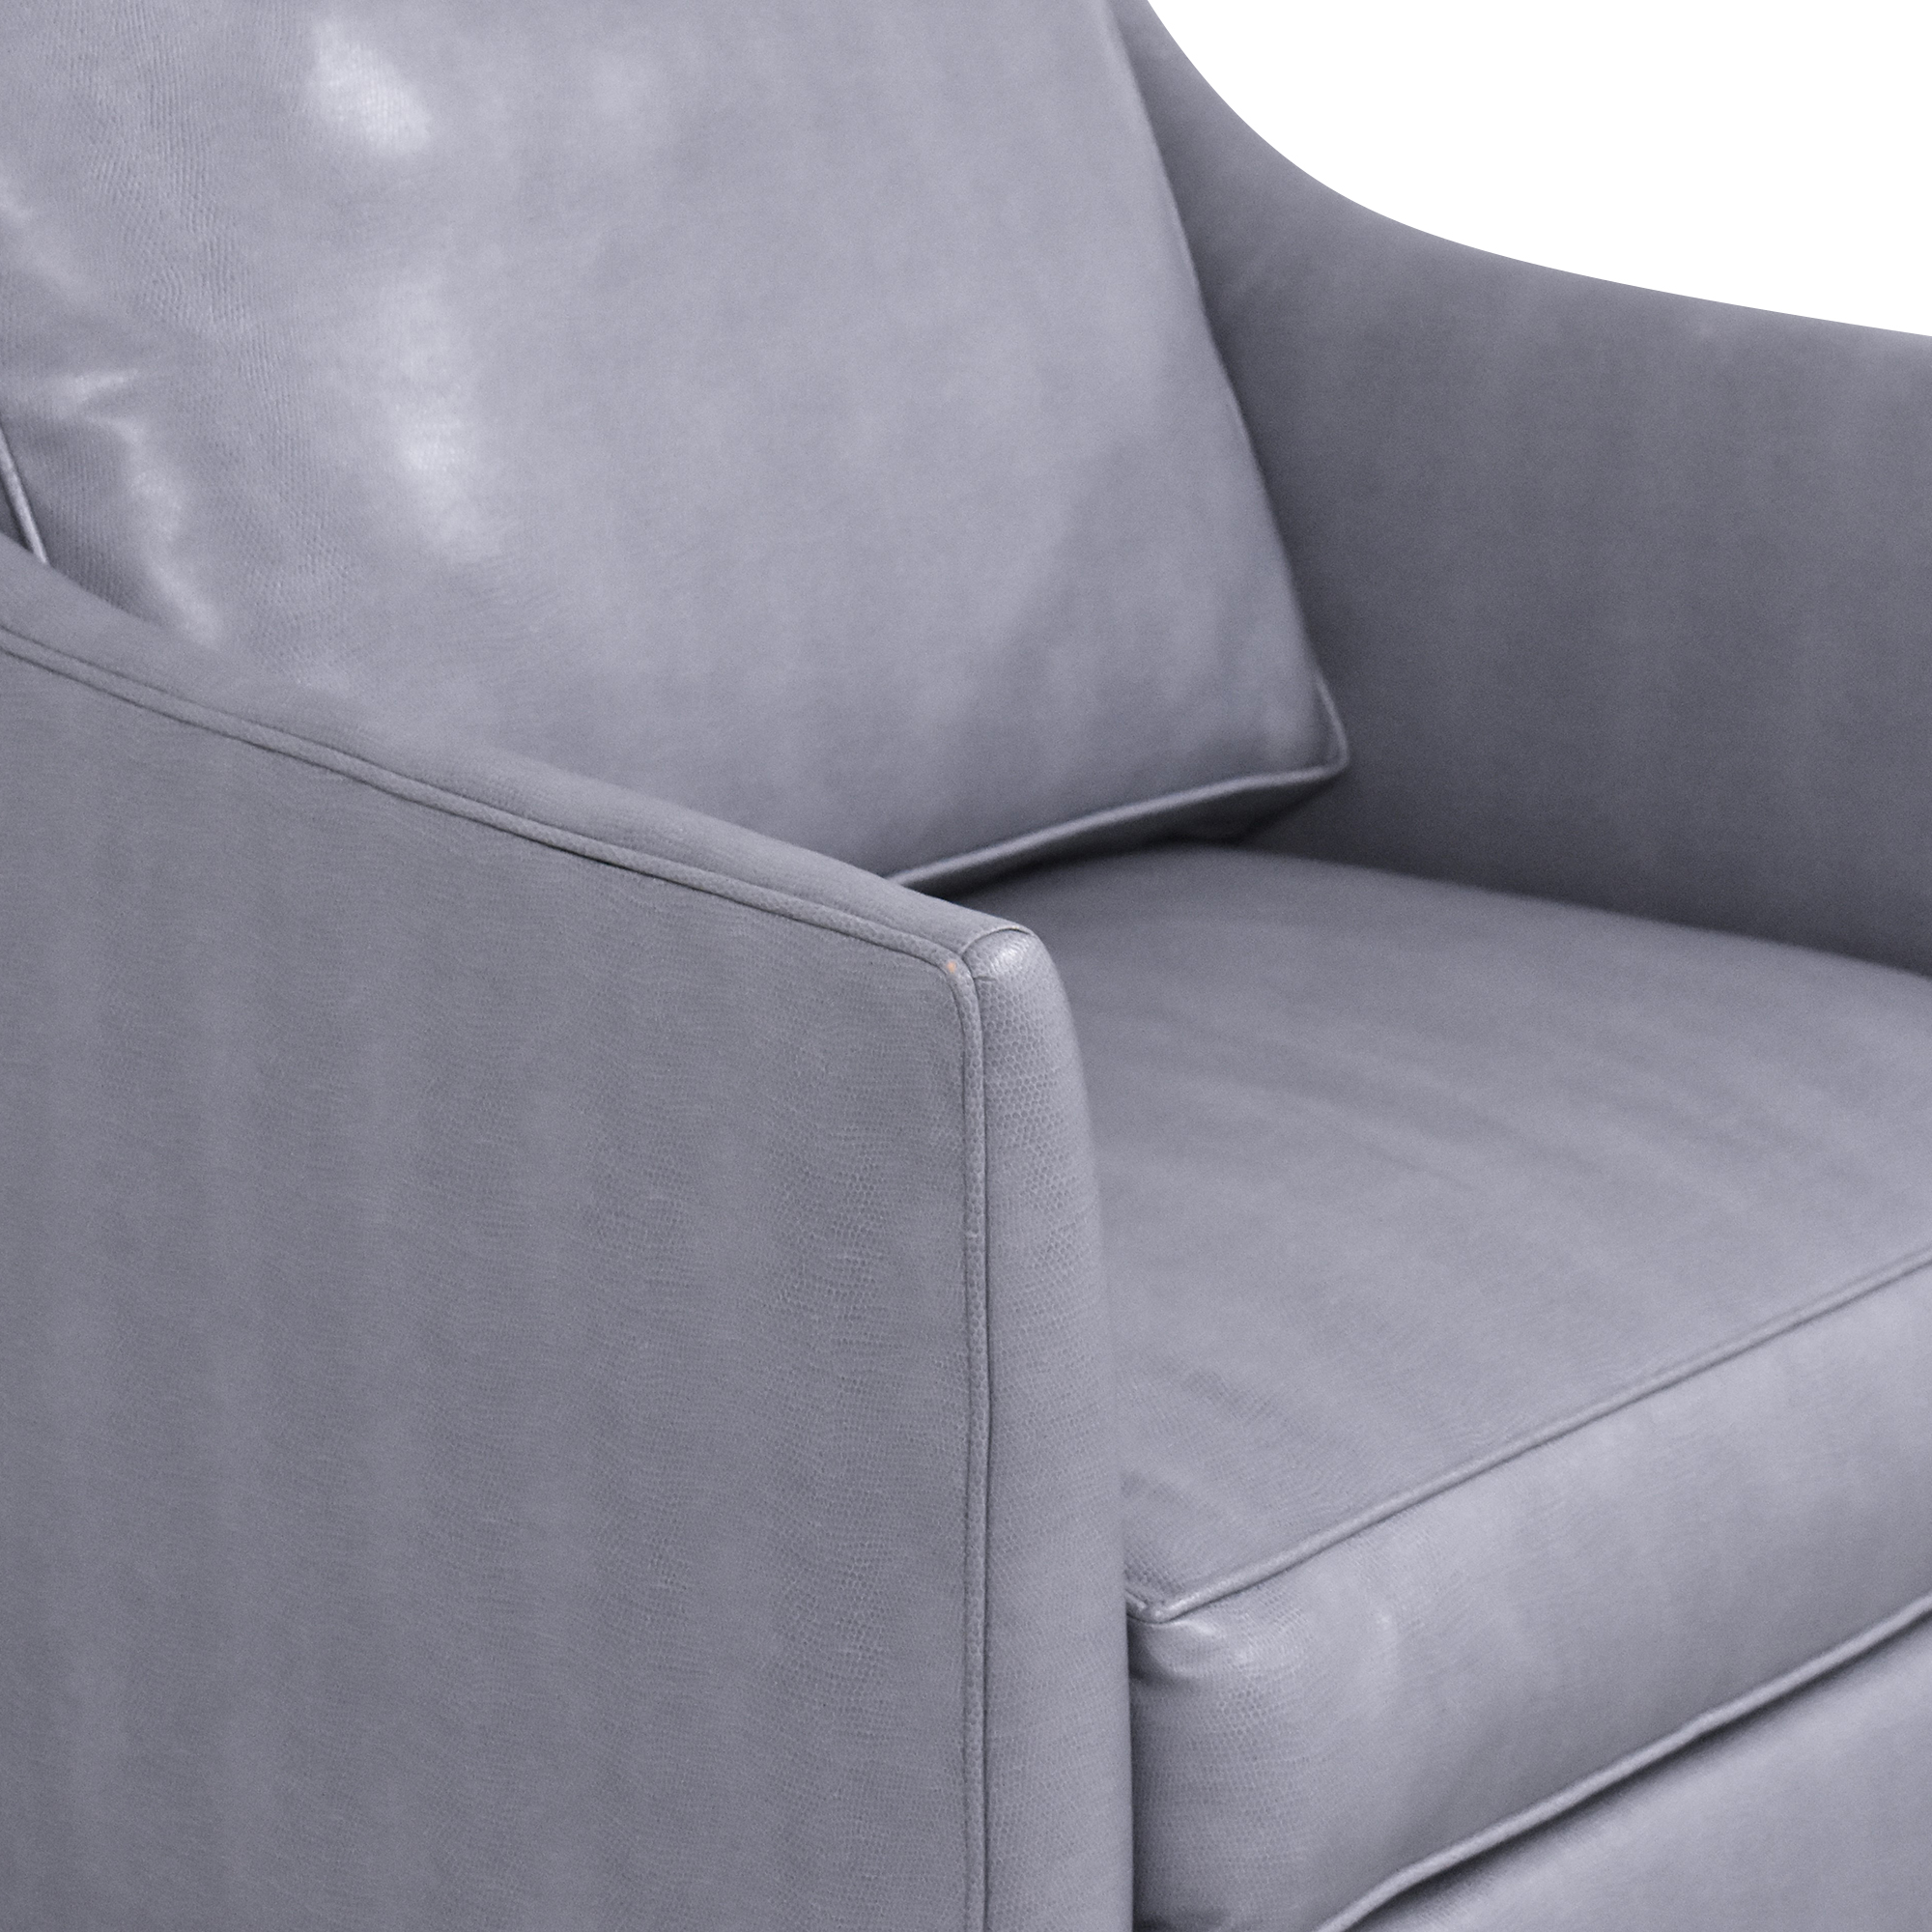 Baker Furniture Baker Furniture Milling Road Accent Chair discount